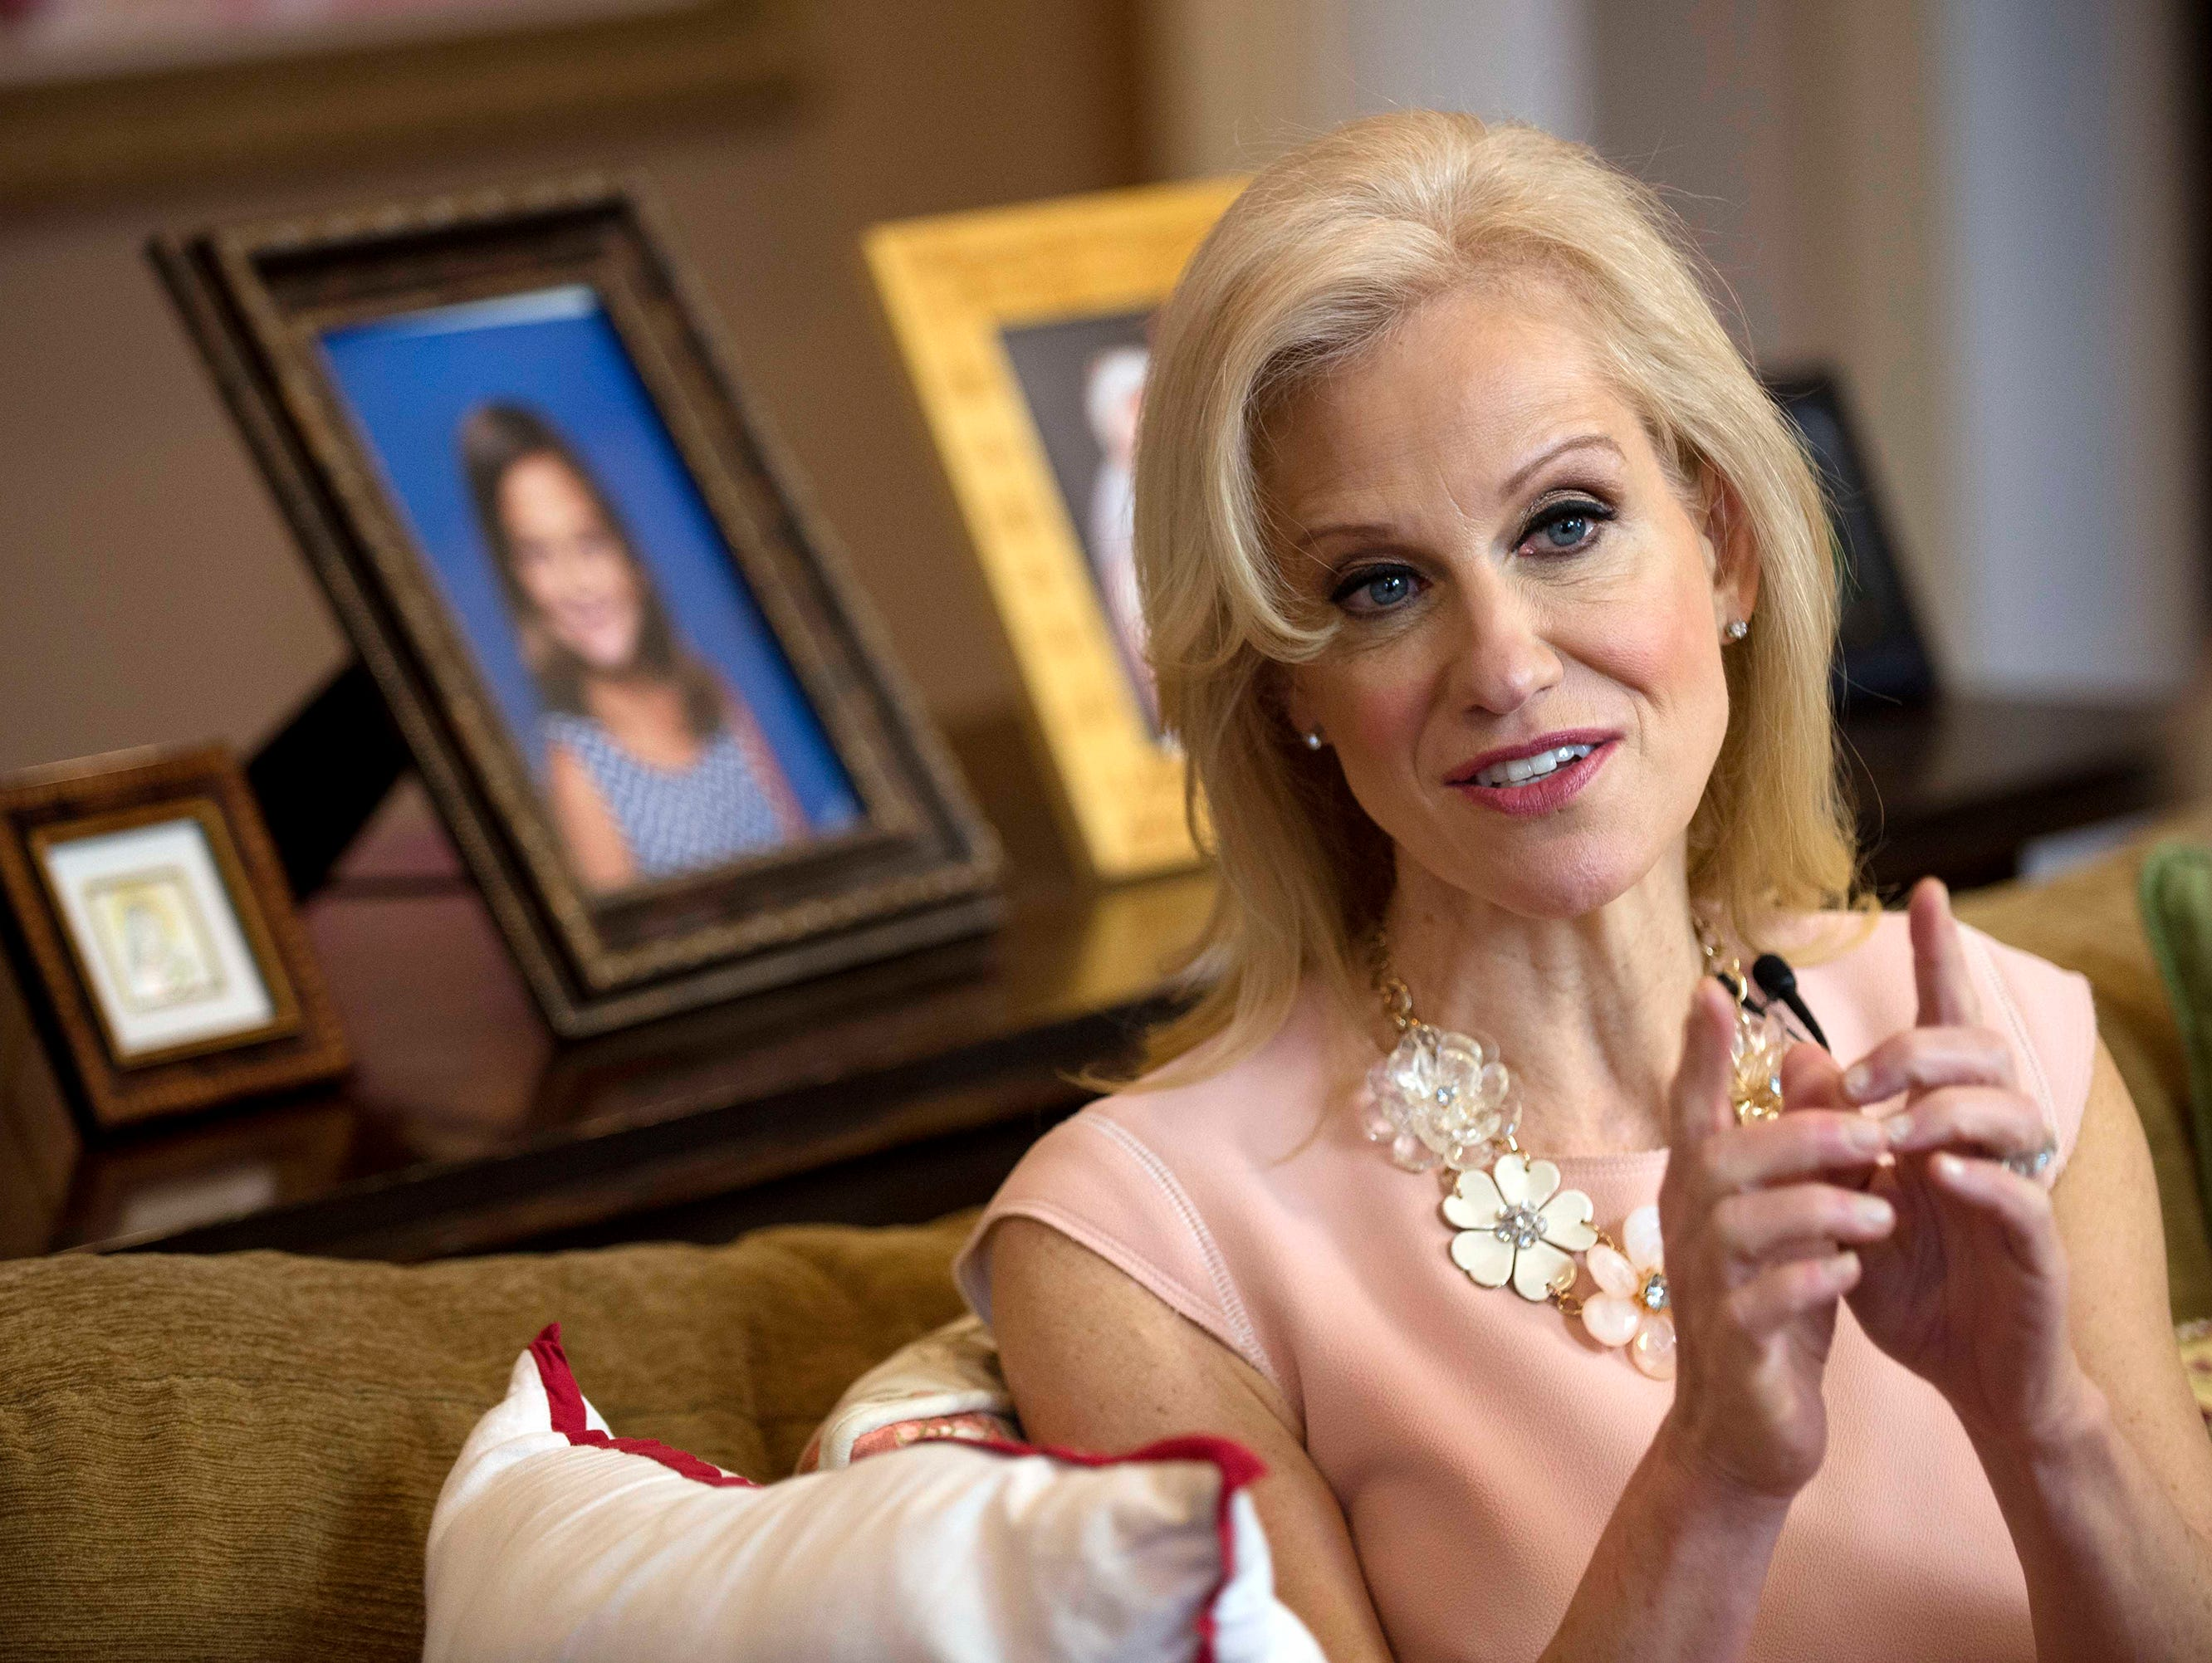 A cousin reveals the real Kellyanne Conway.